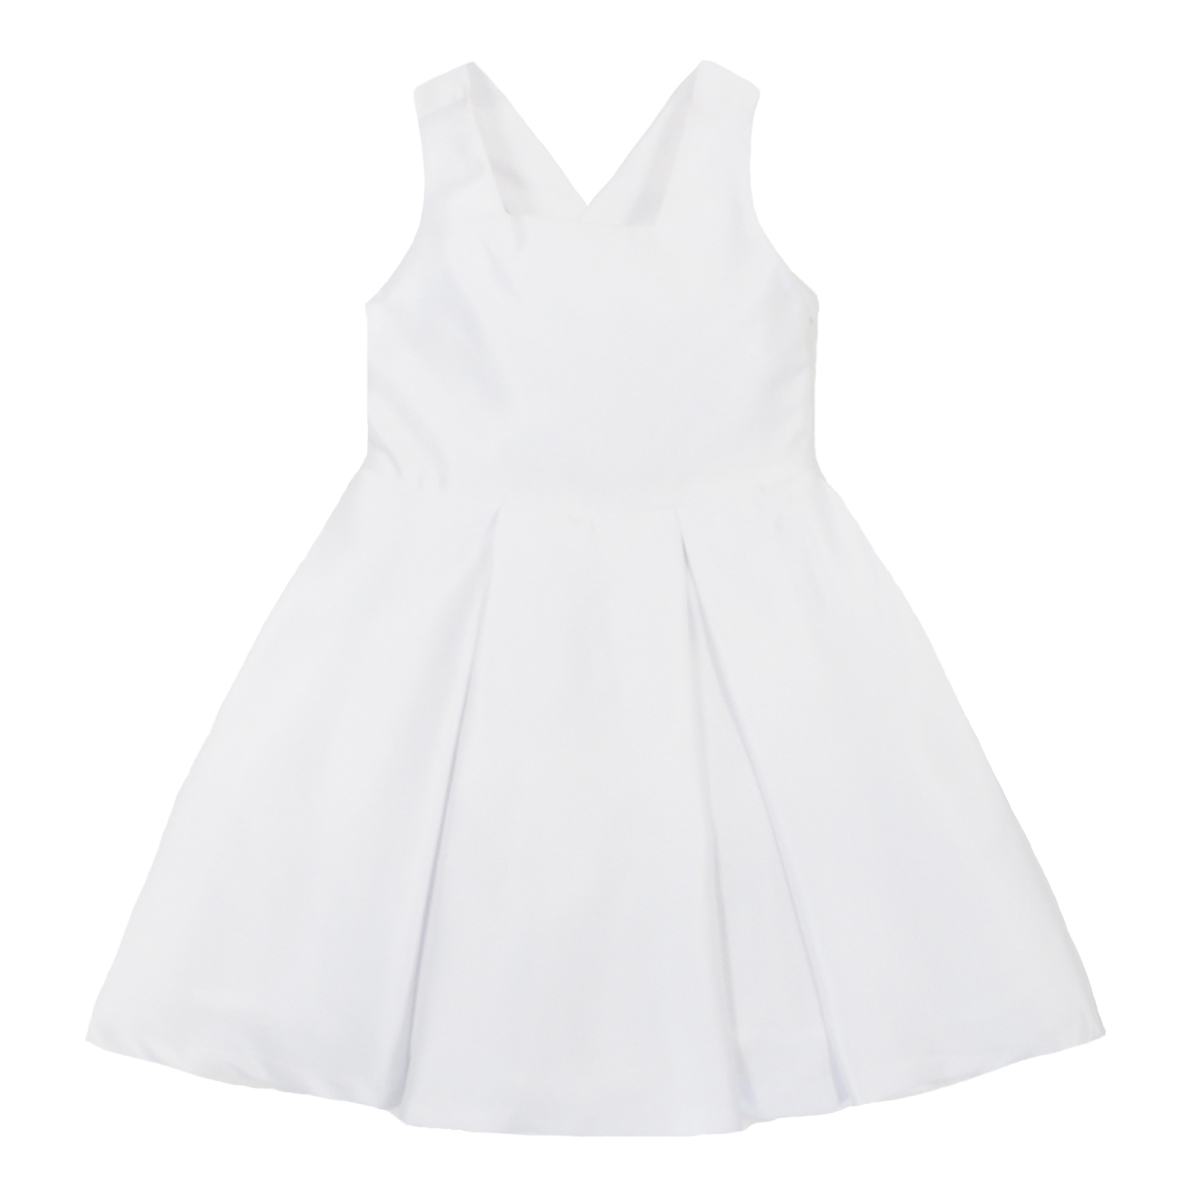 Piccola Ludo Gladiolo Dress in White